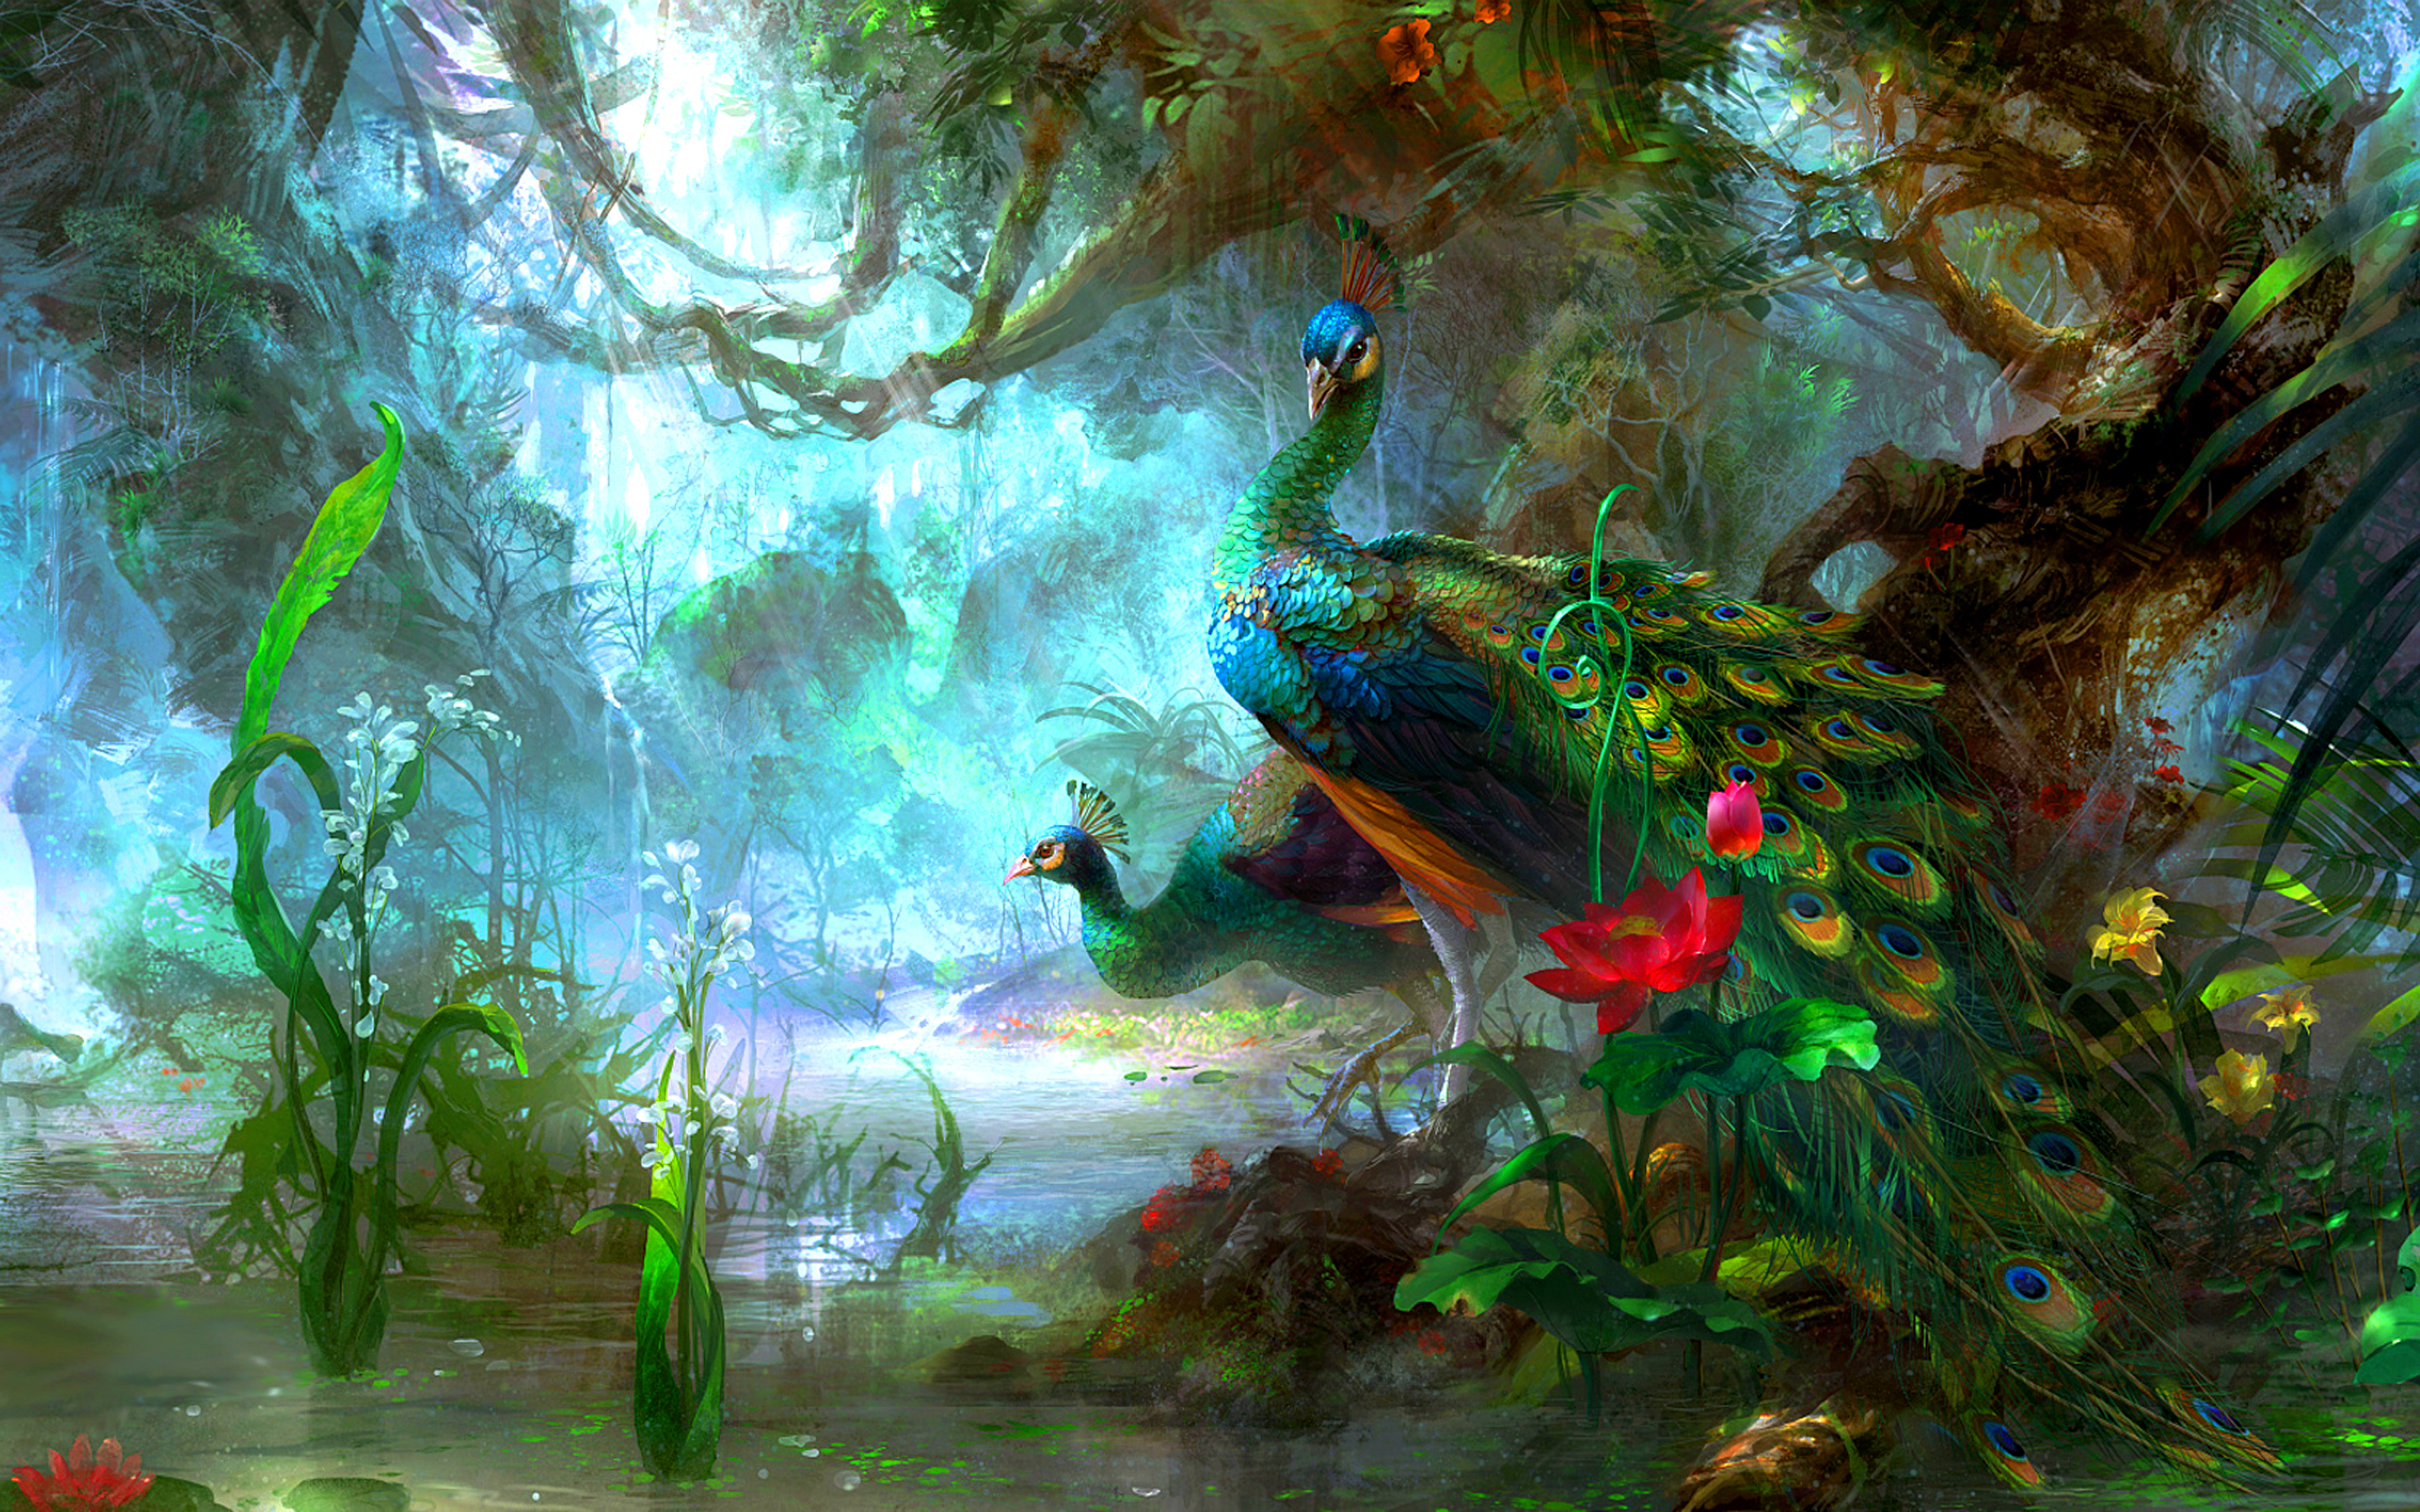 Hd Peacock Print Wallpaper 2560x1600px